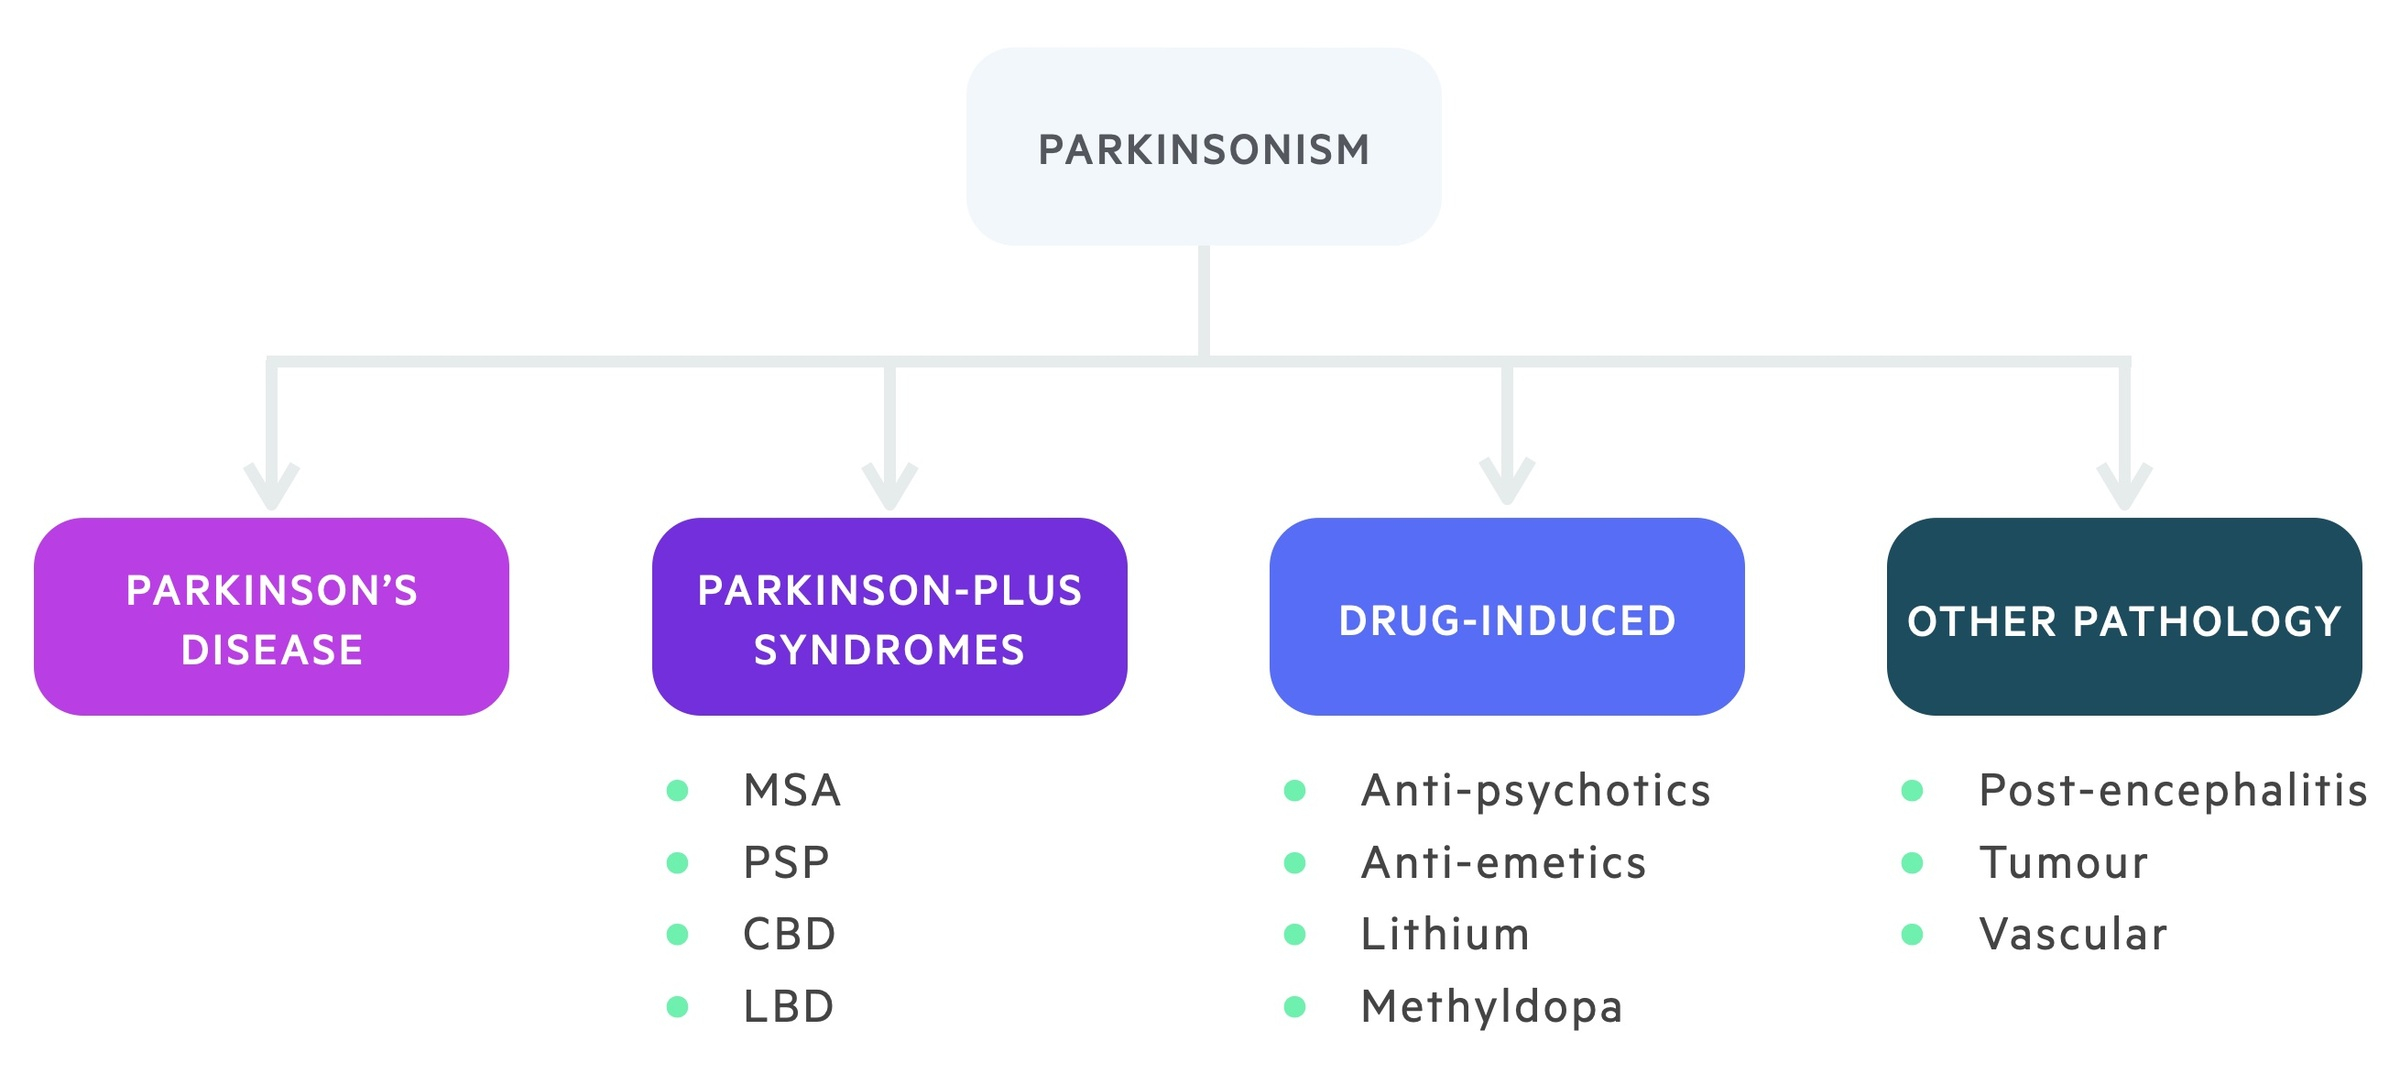 Causes of parkinsonism